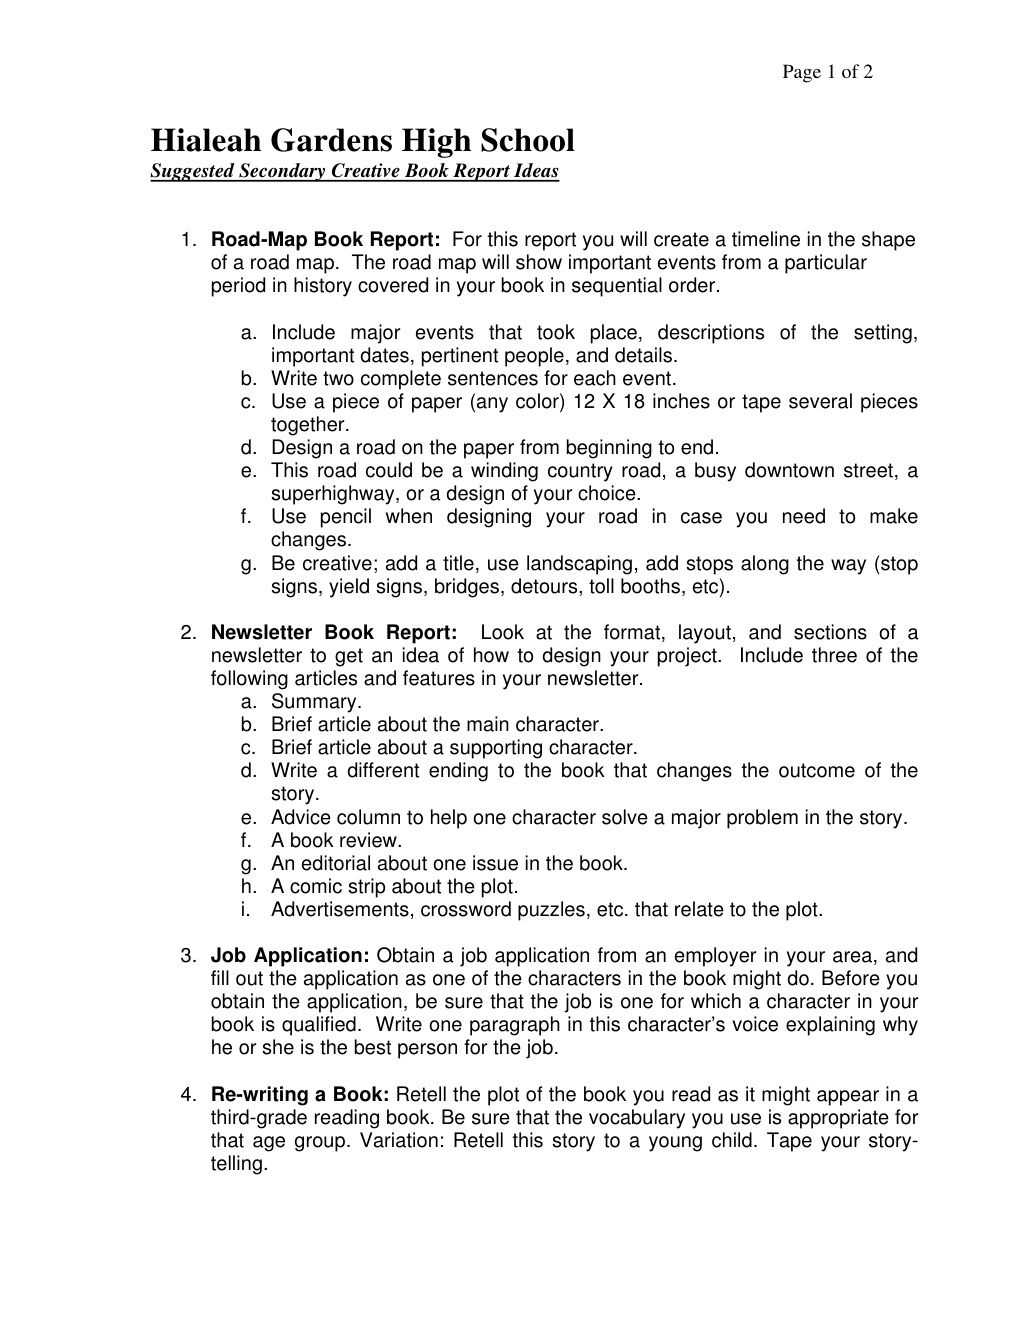 Creative Book Report Ideashialeah Gardens High School Within One Page Book Report Template